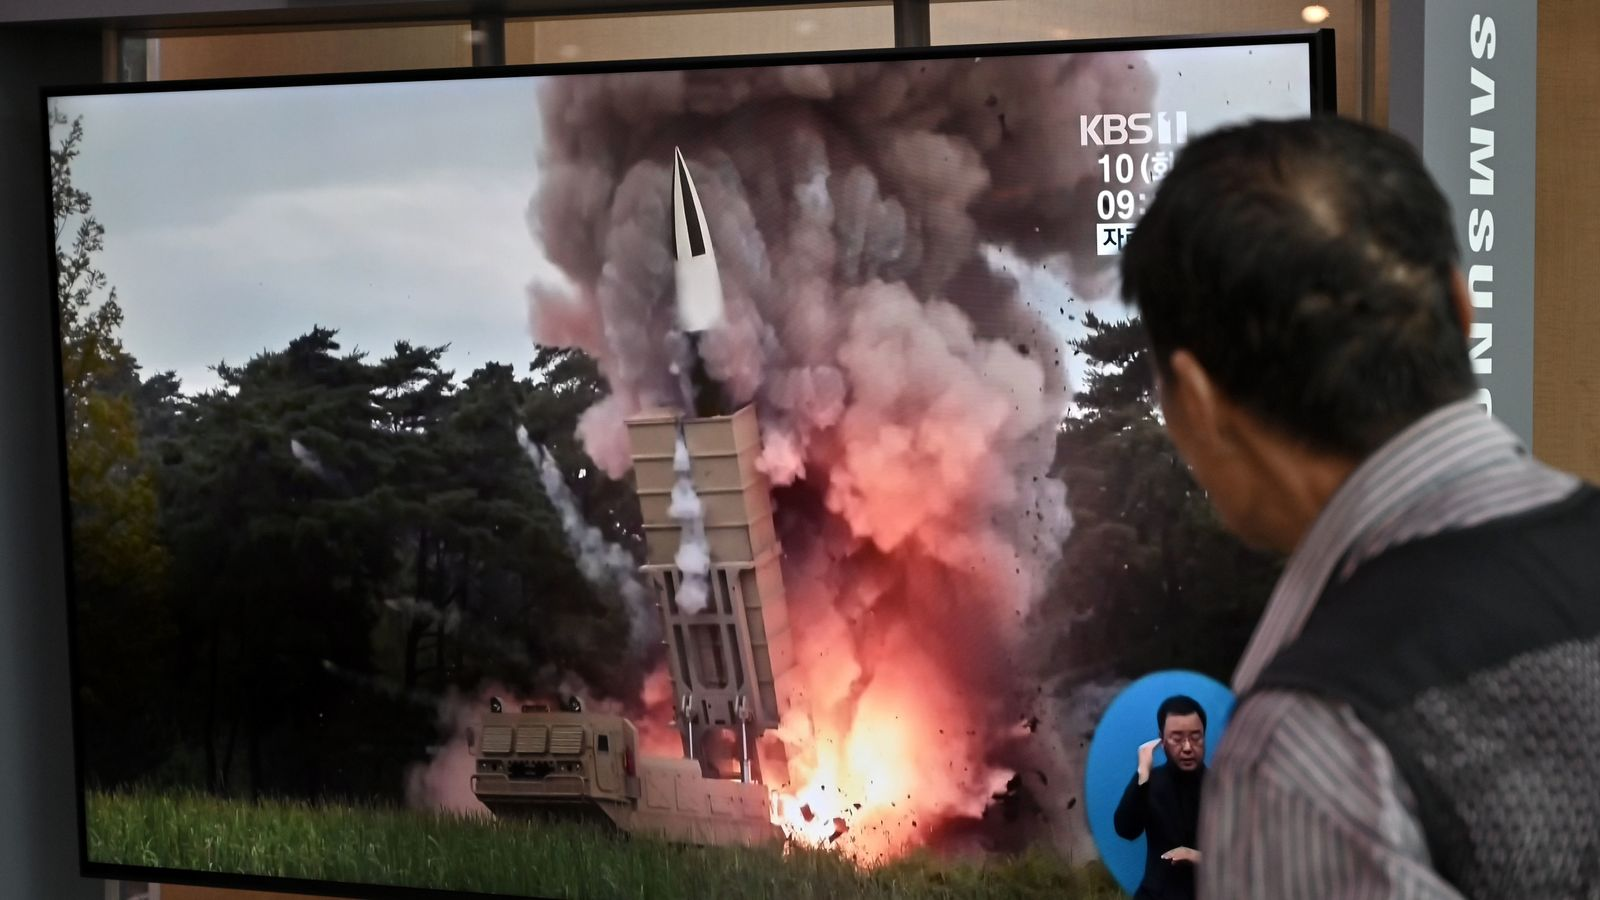 North Korea fires projectiles after offer to resume talks with US